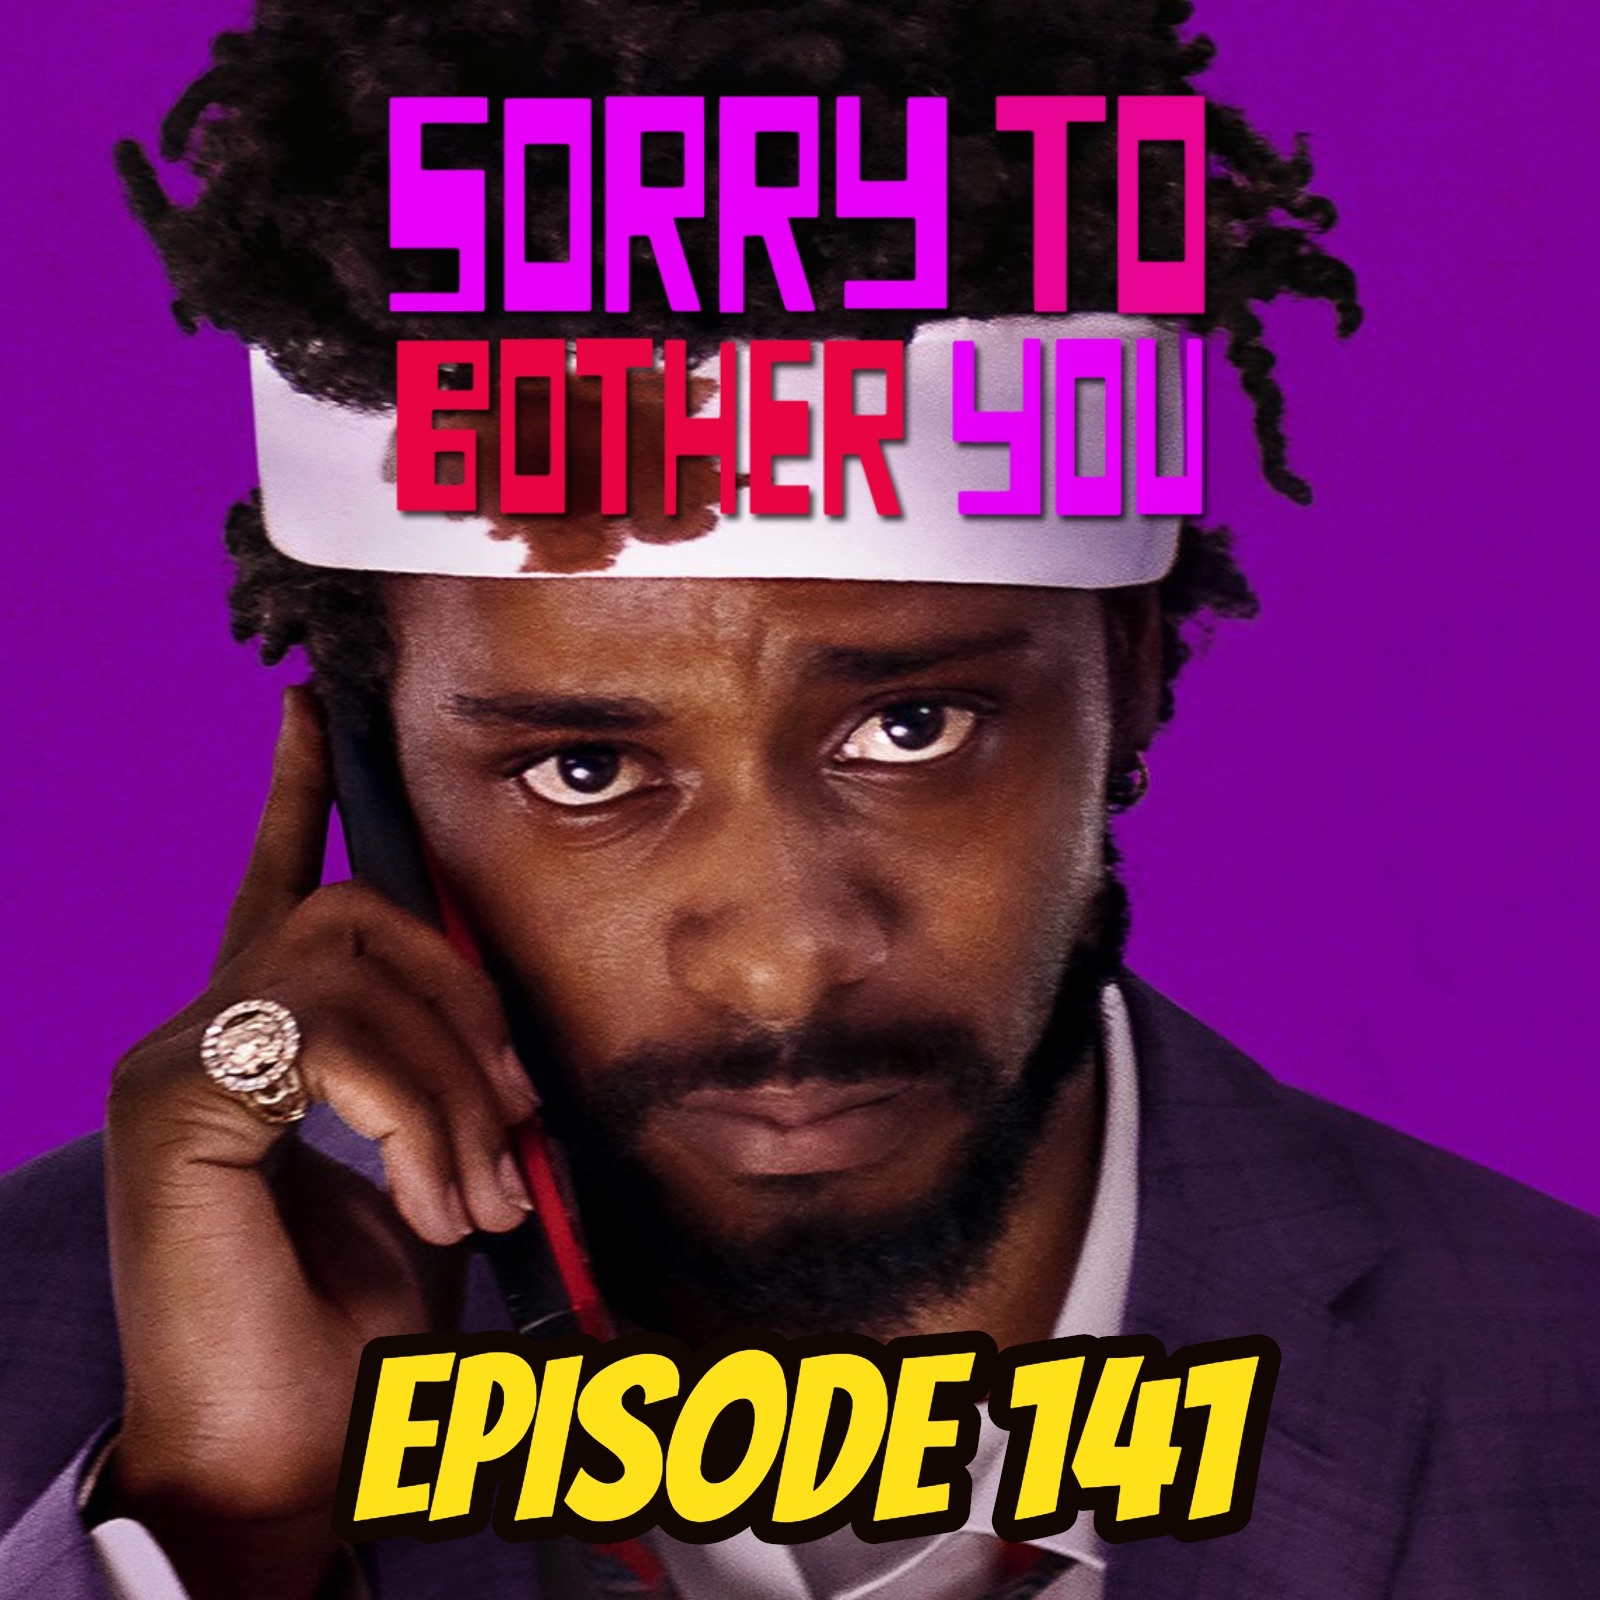 Sorry to Bother You - Episode 141